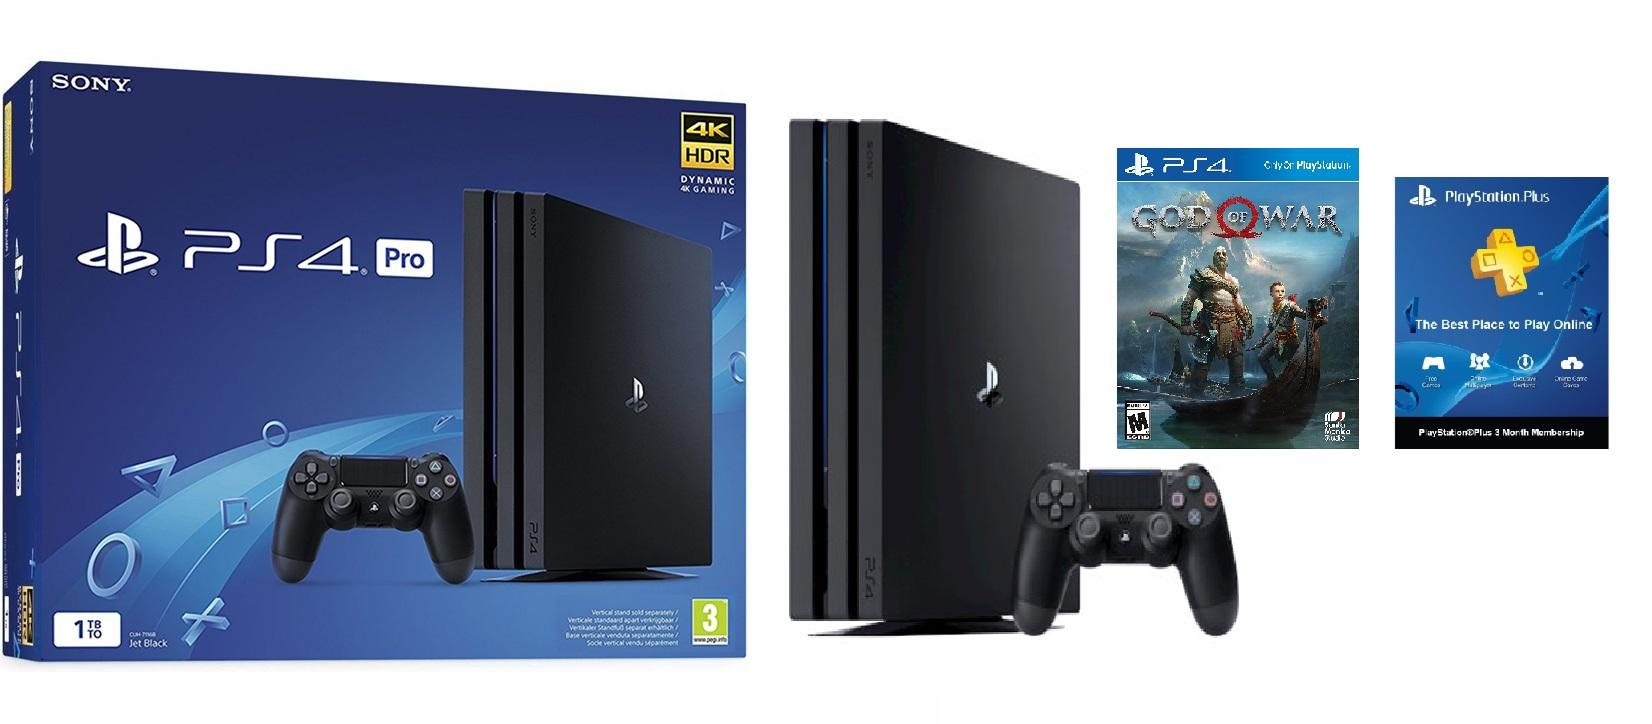 PS4 Pro 4K HDR 1TB Console (Black) + God of War 2018